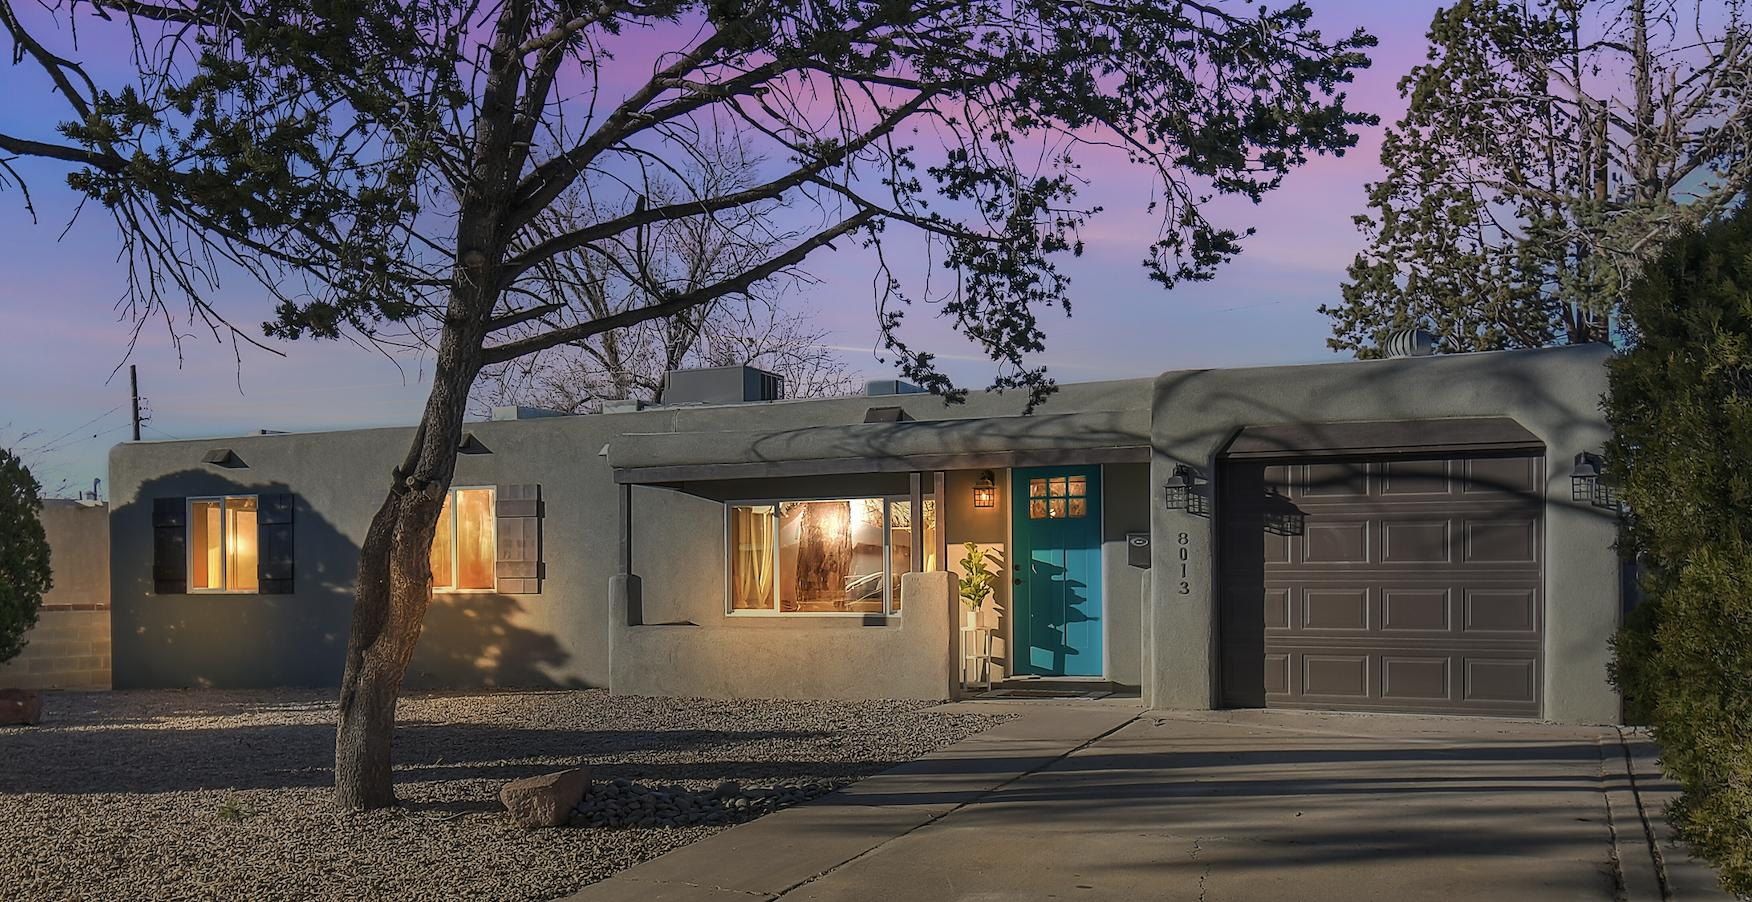 Welcome Home to this Stunningly Renovated & Remodeled Gem in Uptown Albuquerque! This 4 Bedroom, 2 and 3/4 Bath home has 2 large living areas, 2 masters, fully landscaped front & backyard, refrigerated air, & custom finishes. No expense or detail was spared on this extraordinary rehab! From the intricately laid Herringbone Tile Floors to the Hand-Made Custom Cabinets in the Kitchen w/ Soft Close Doors; Black Walnut Accents; & pull out Spice Rack, to the Second Master Suite Addition w/ Luxurious Spa en-suite. You will be amazed by the quality of craftsmanship. There was not a stone left unturned w/ the New TPO Roof, New HVAC & Duct Work, New Stucco, New Sewer & Water Lines, New Electrical Panel & Full Electrical System Overhaul, New Gas Lines & Service, New Water Heater, New Appliances, etc